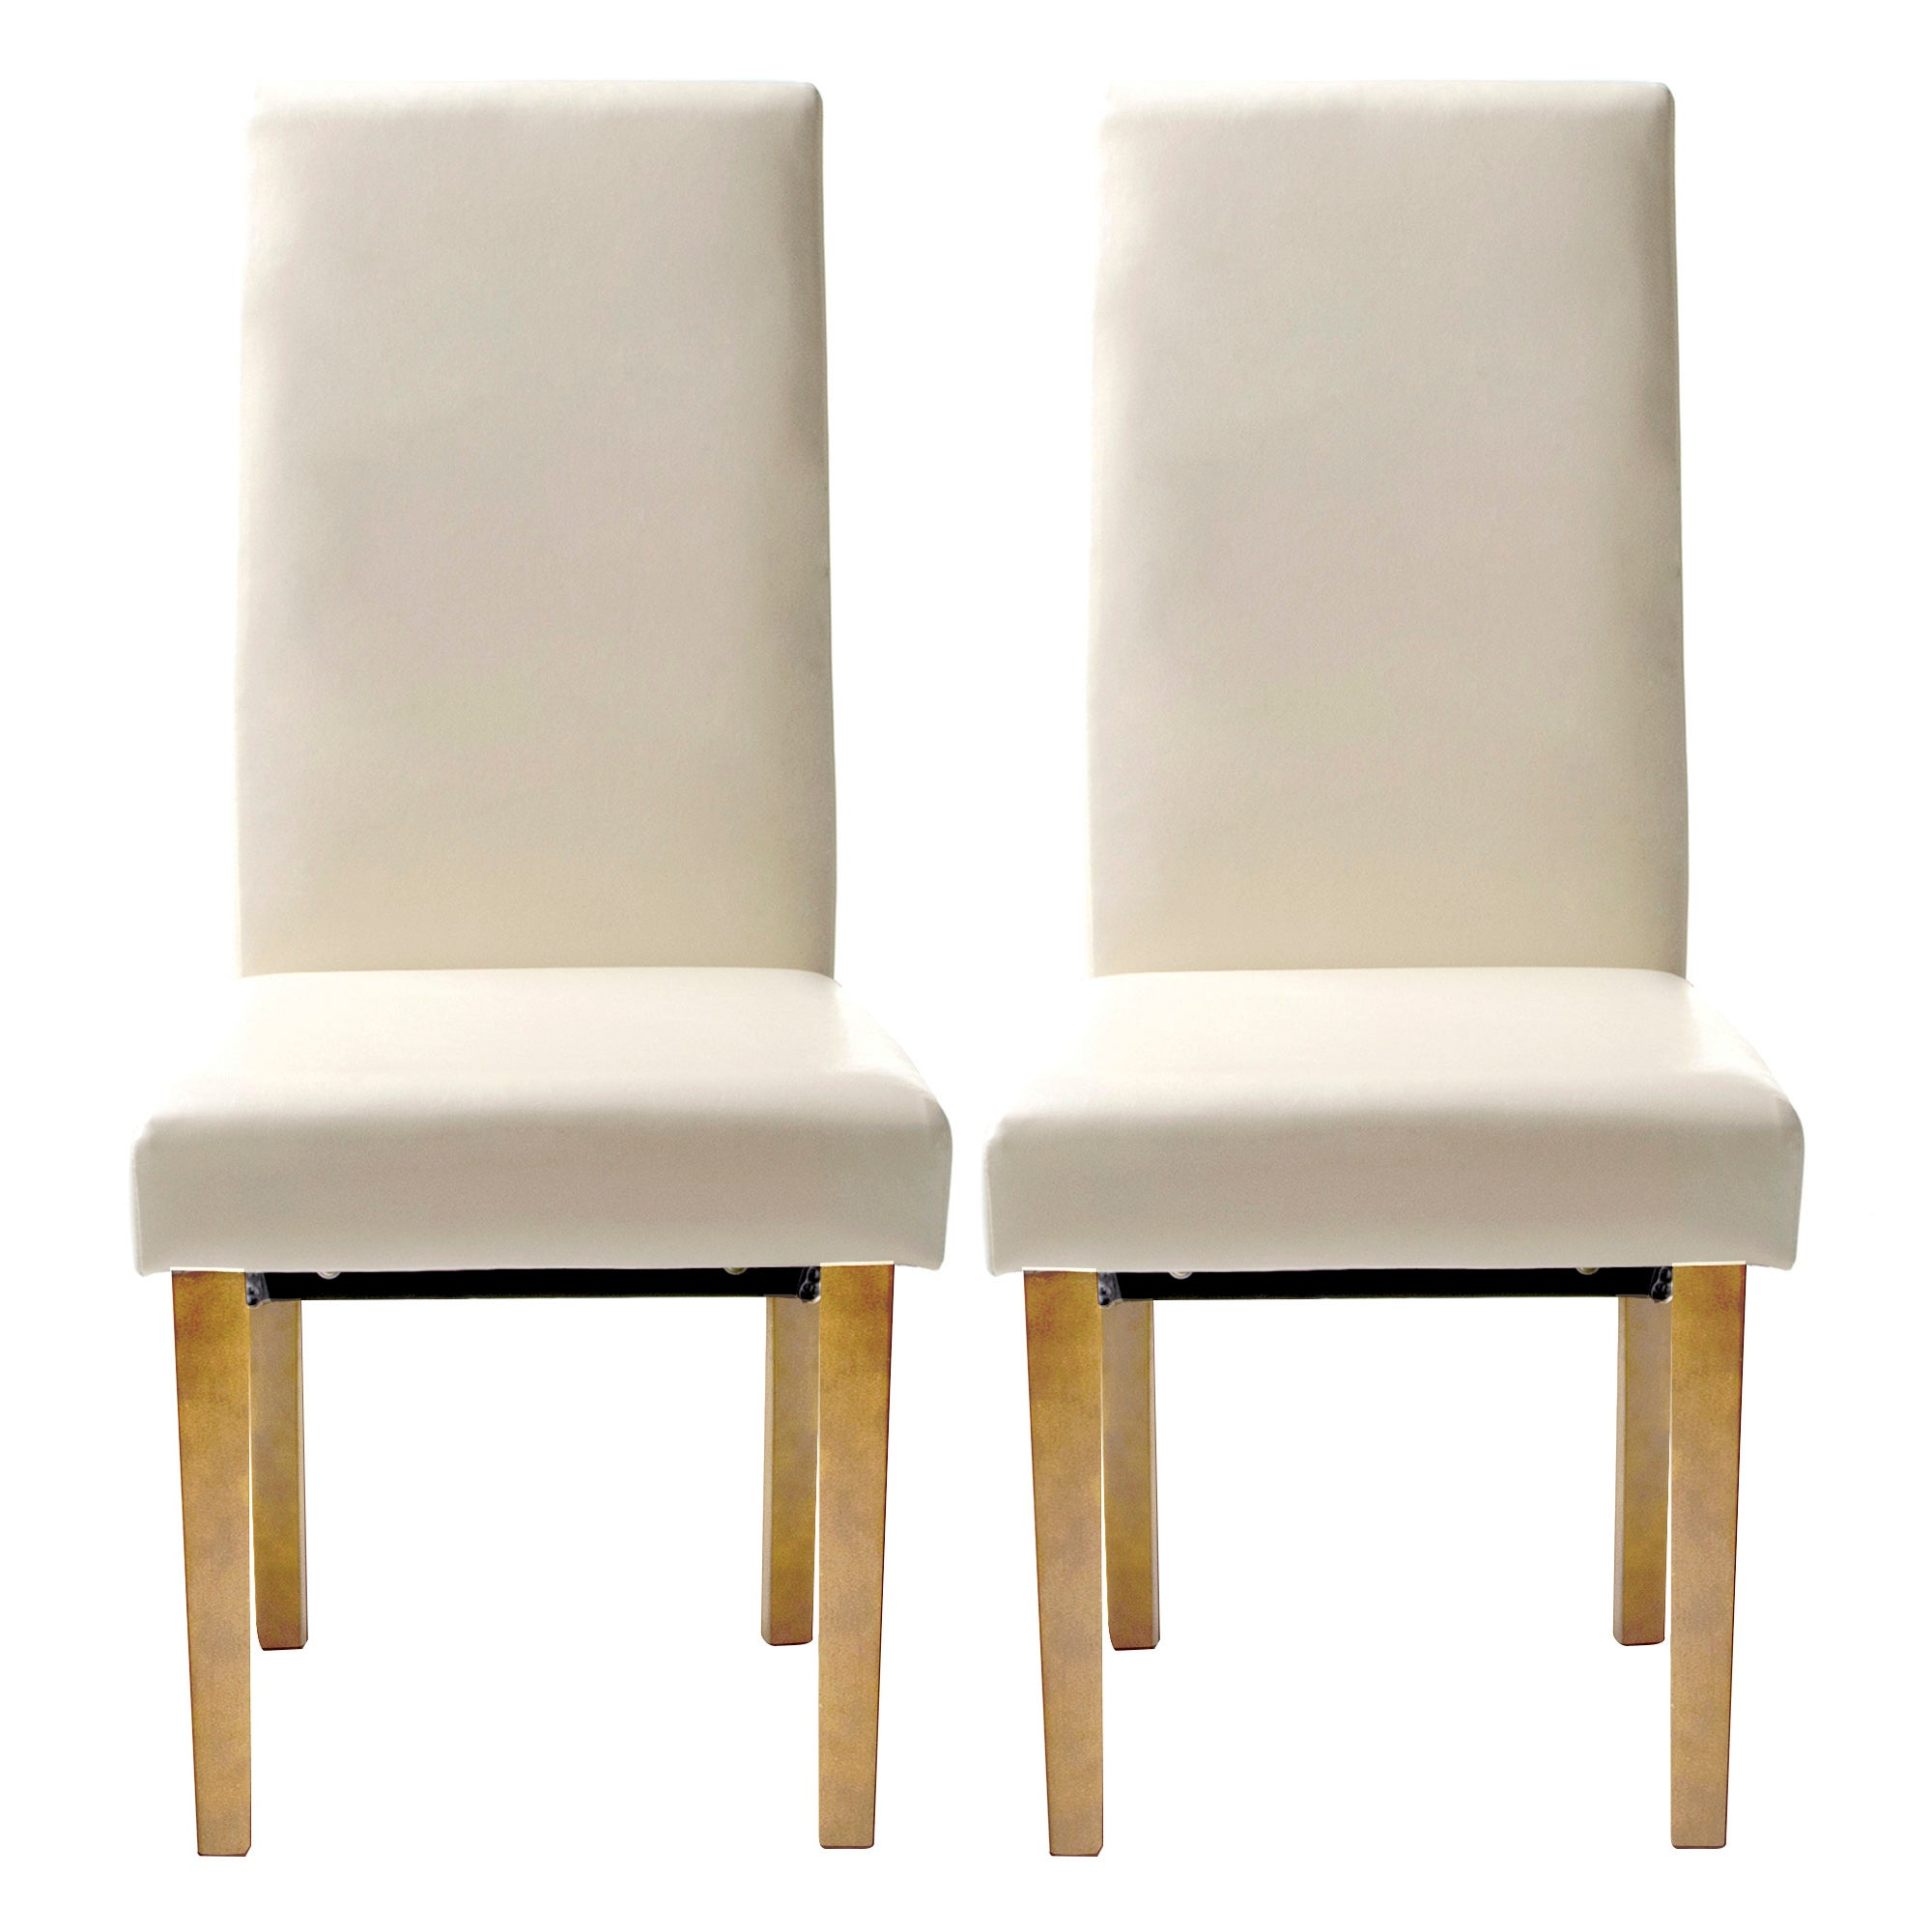 Photo of Hunston cream faux leather pair of extra large dining chairs cream